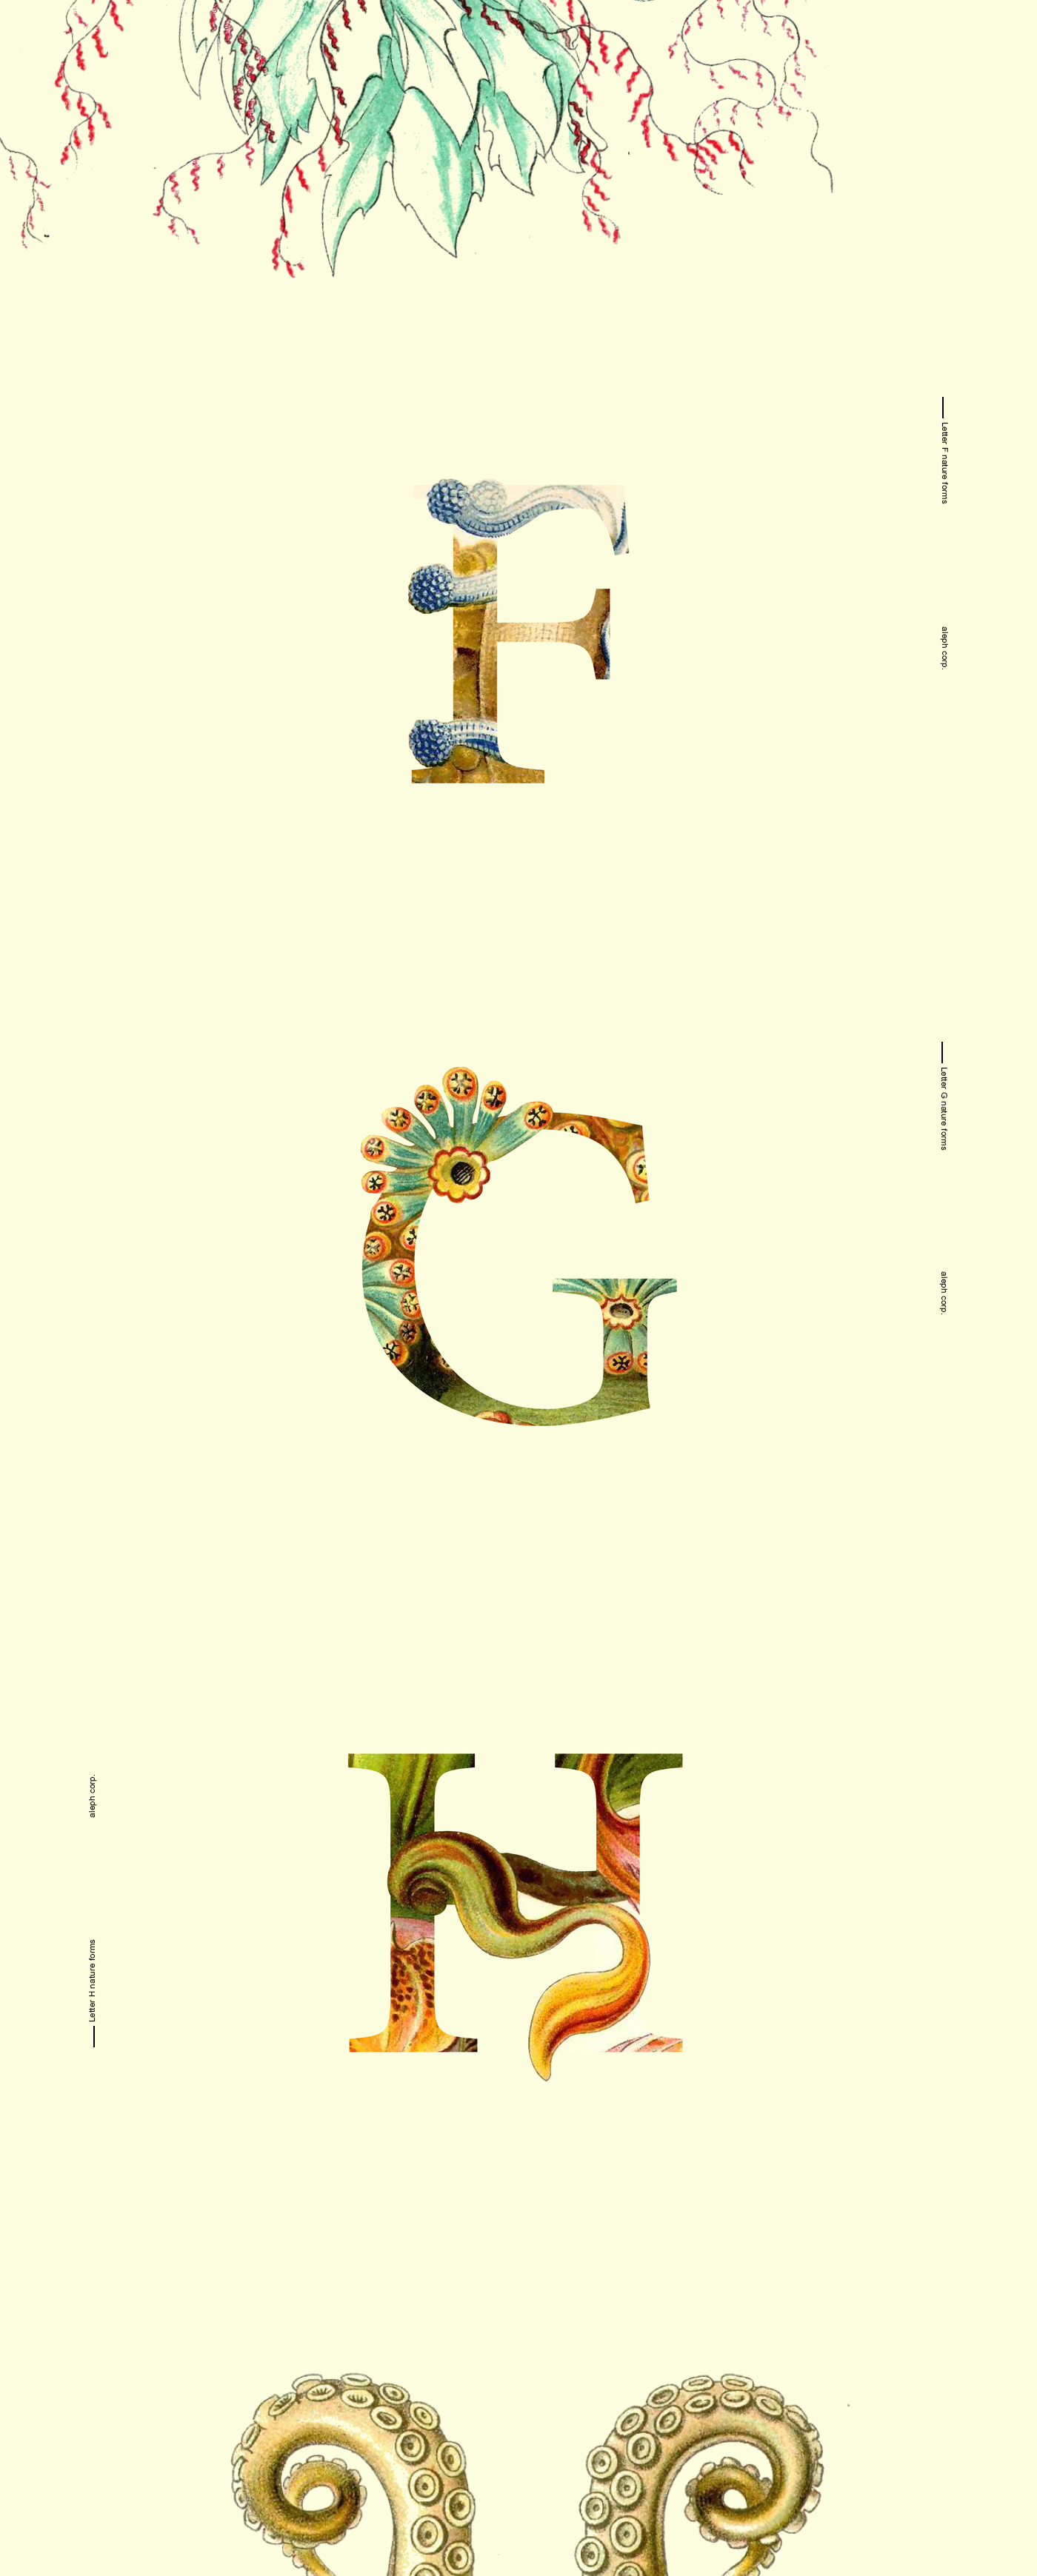 font,vintage,kunst,how to,free,naturalist,germany,biology,creature,alphabet